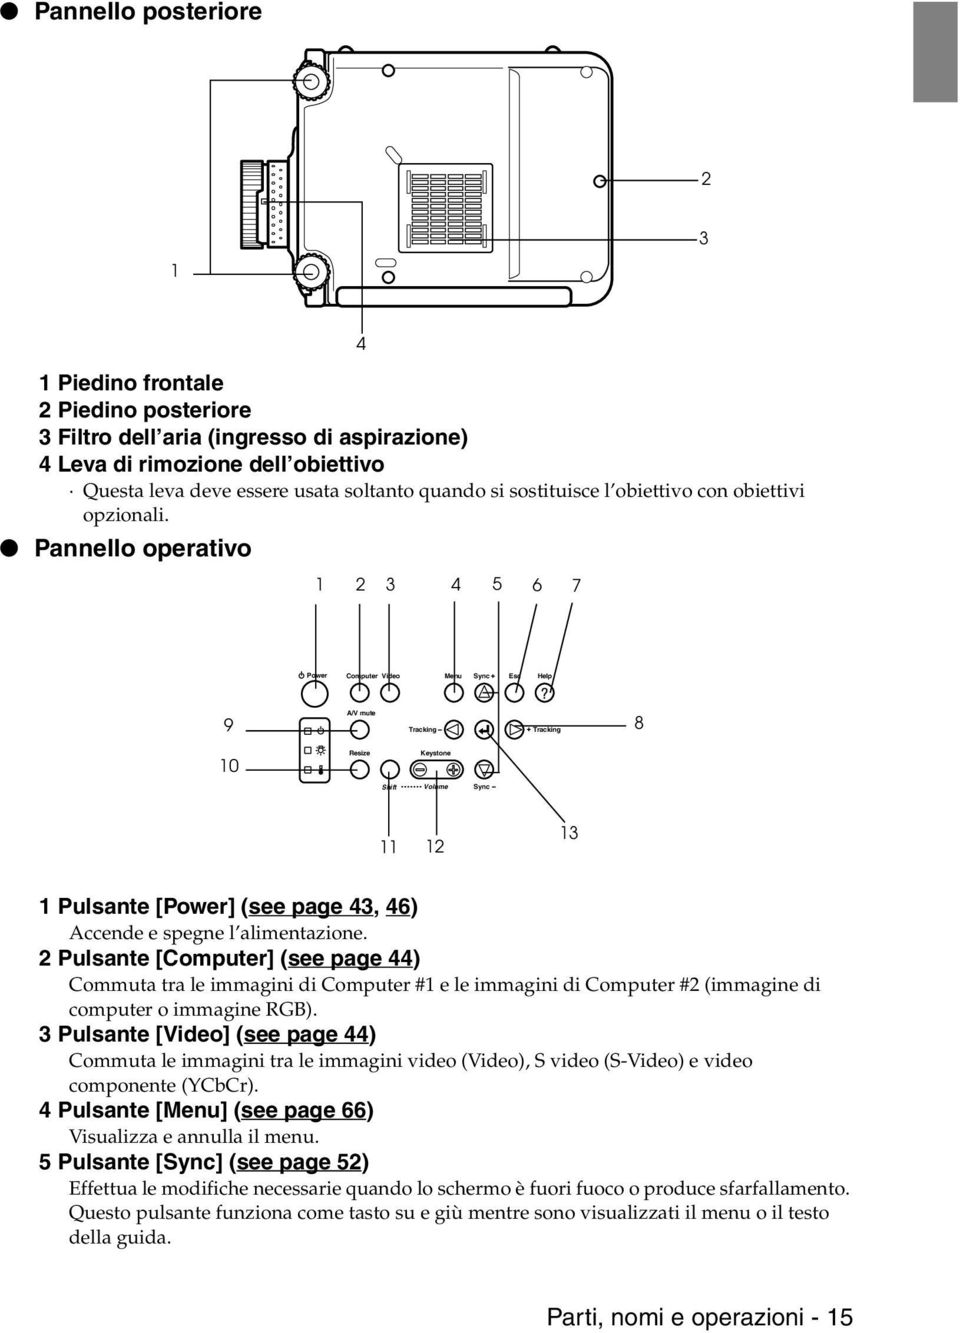 Pannello operativo 1 2 3 4 5 6 7 Power Computer Video Menu Sync Esc Help 9 A/V mute Tracking Tracking 8 10 Resize Keystone Shift Volume Sync 11 12 13 1 Pulsante [Power] (see page 43, 46) Accende e